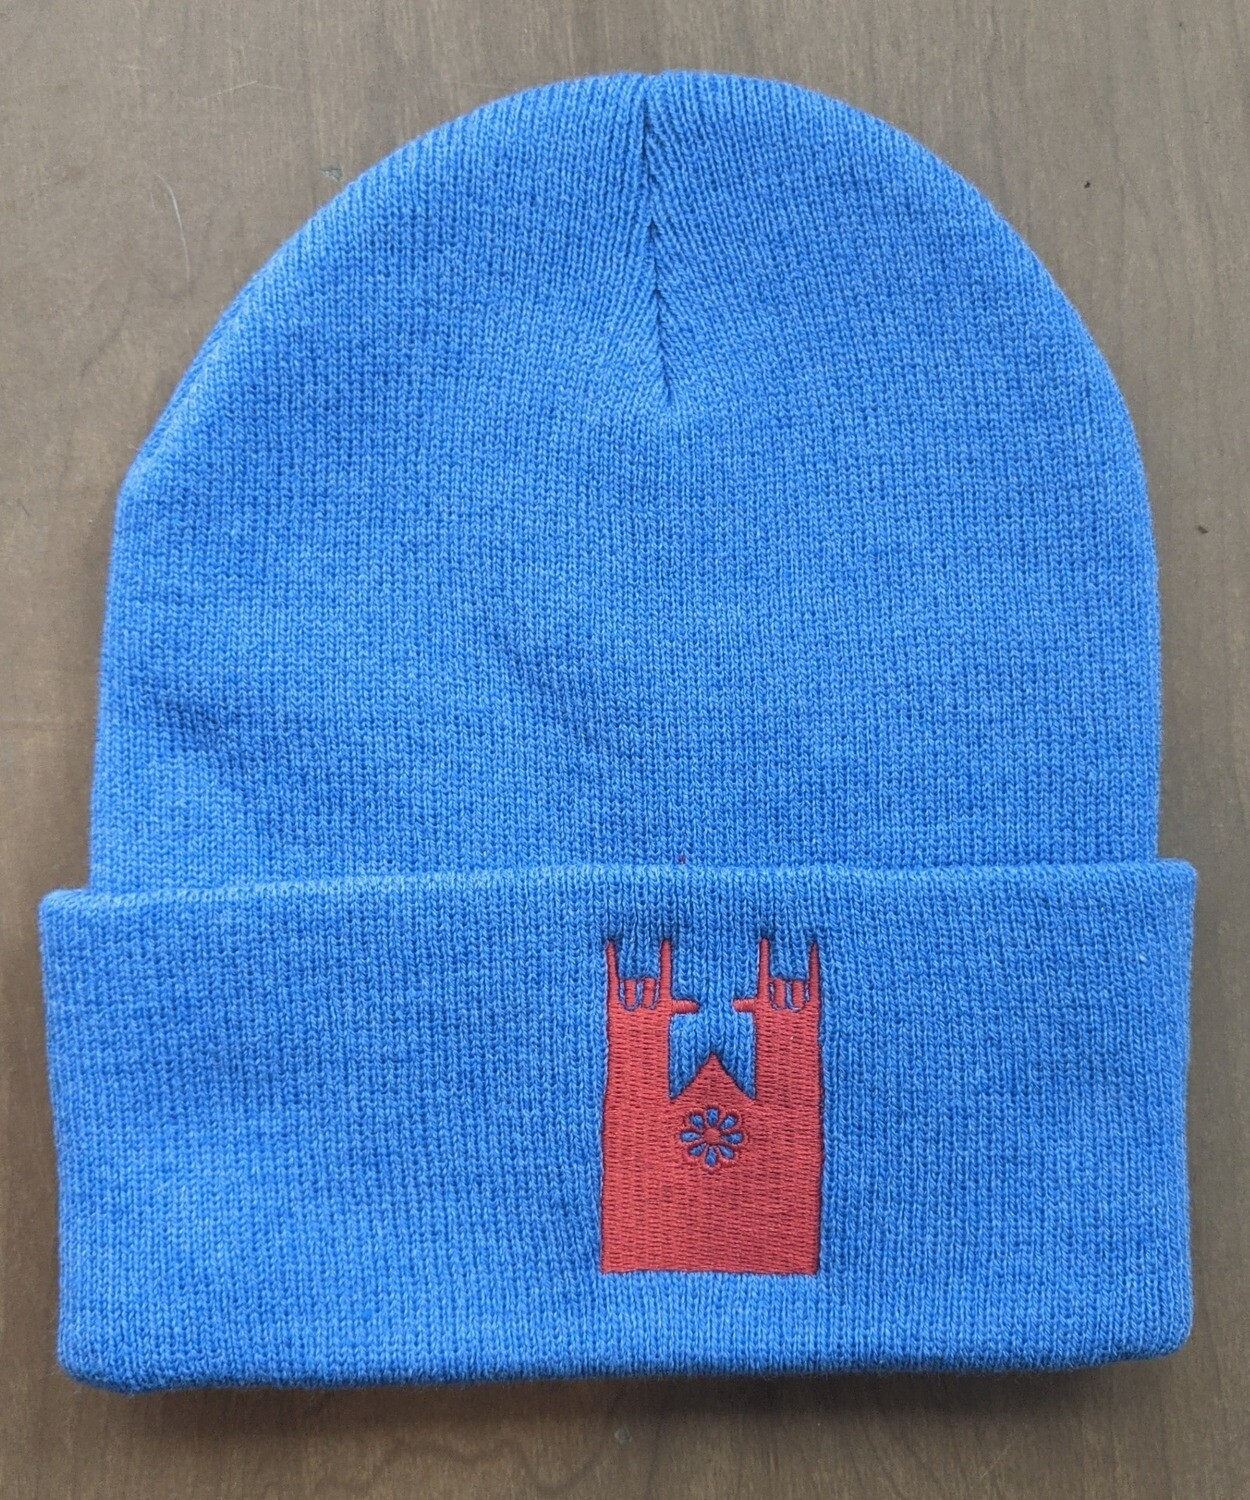 Guelph Esteem Toque - Light Blue